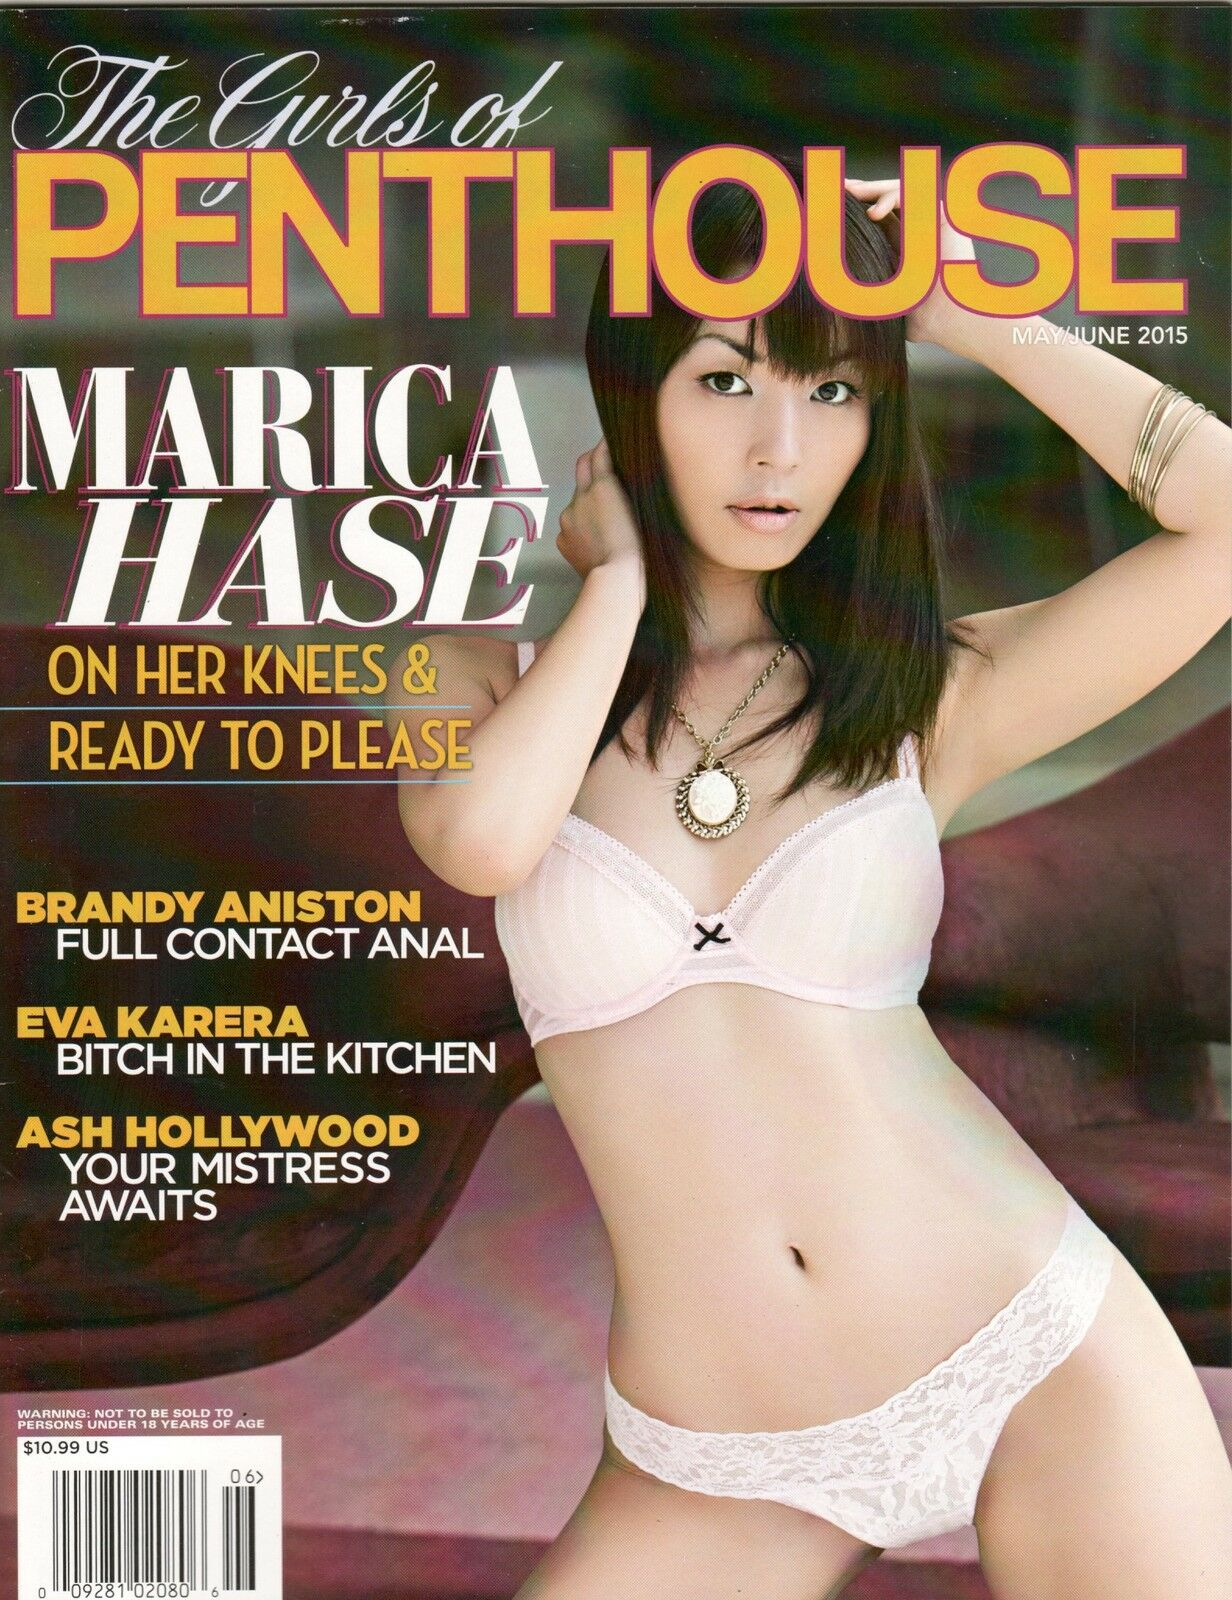 the girls of penthouse magazine marica hase may june 2015 cad picclick ca. Black Bedroom Furniture Sets. Home Design Ideas